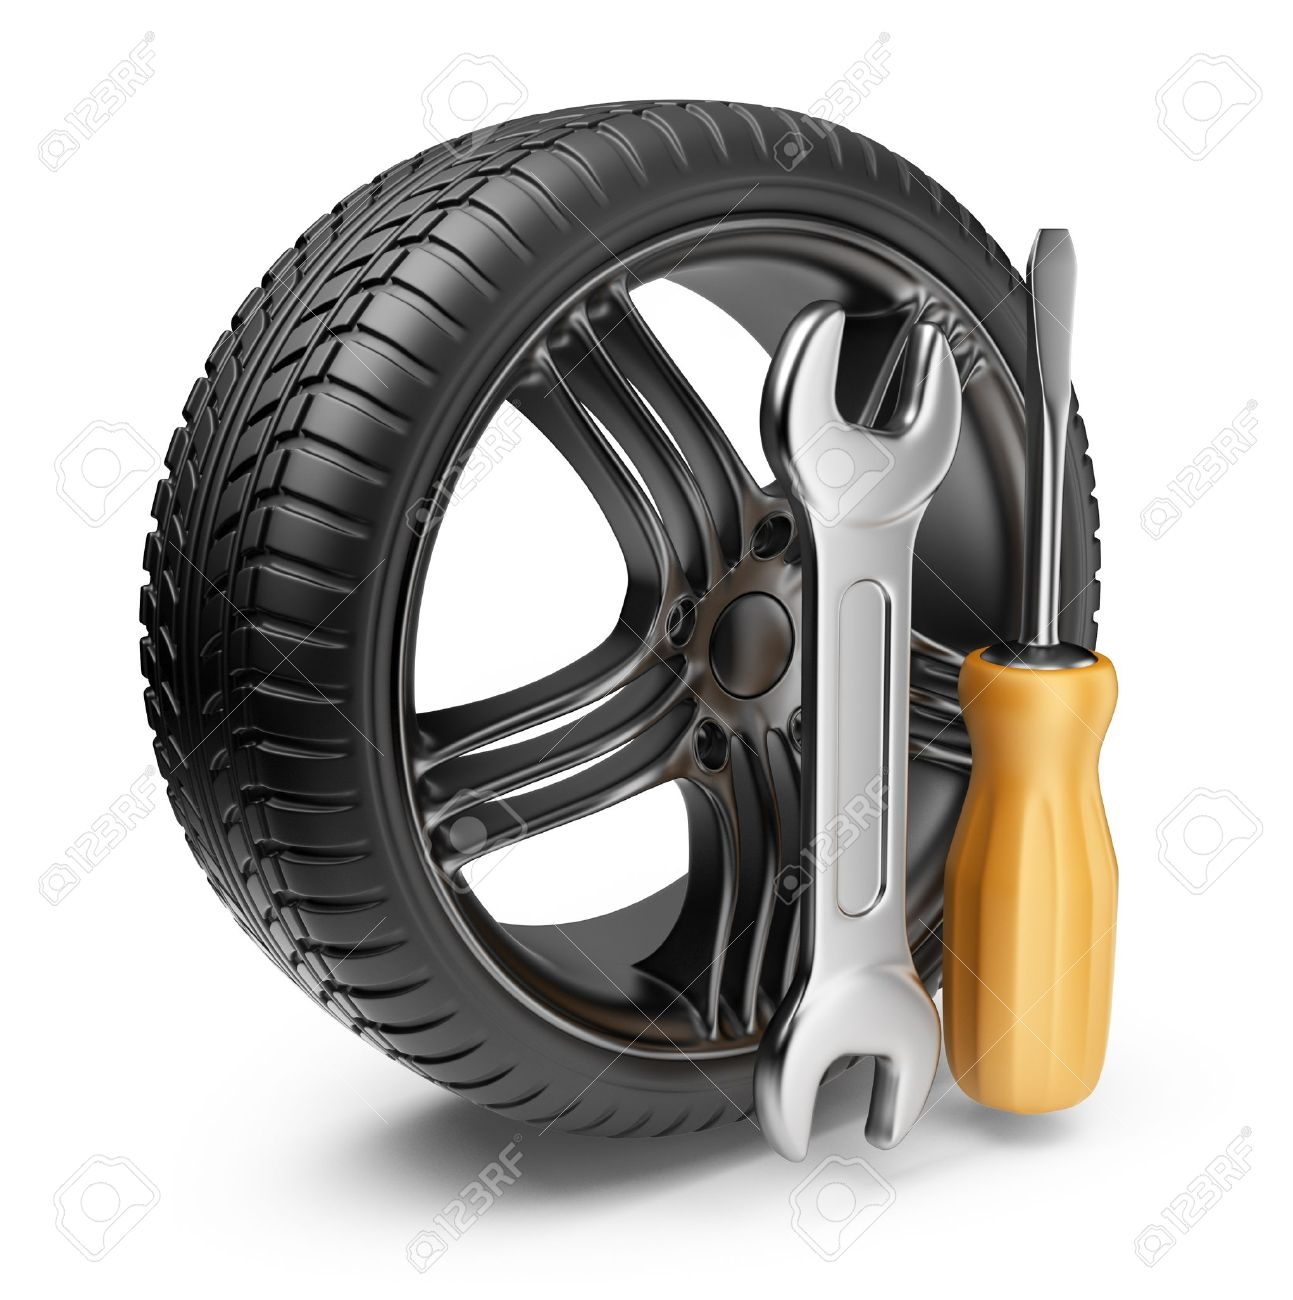 Wheel and tools Car service 3D Icon isolated on white background - 15940119